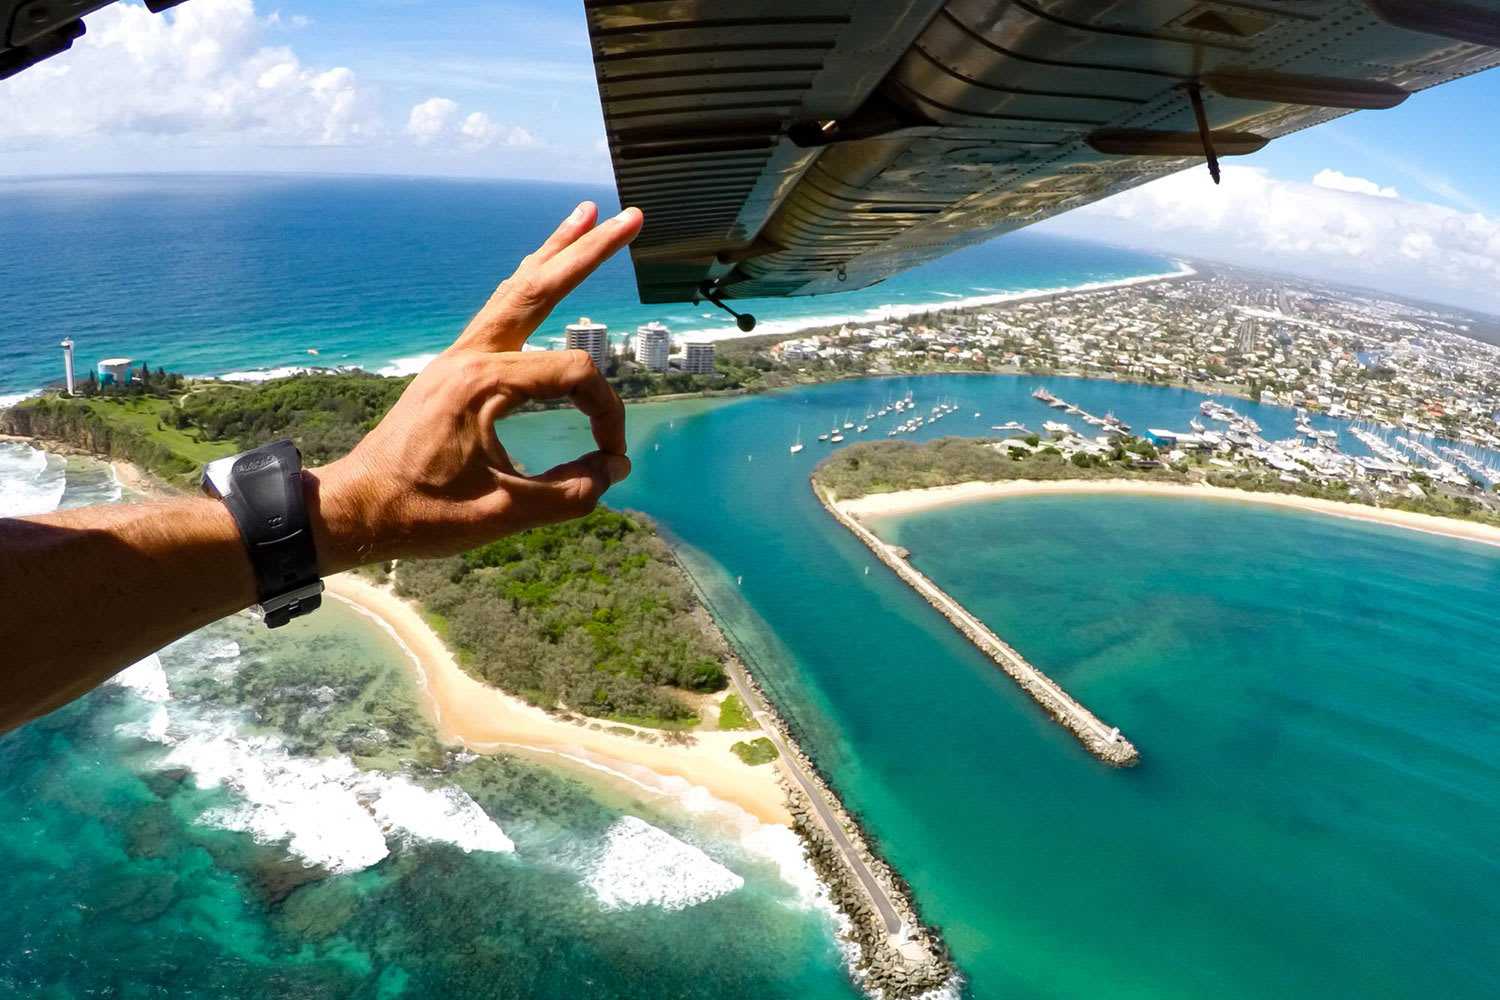 Maroochy River Seaplane Adventure Flight, For 2 - Maroochydore, Sunshine Coast